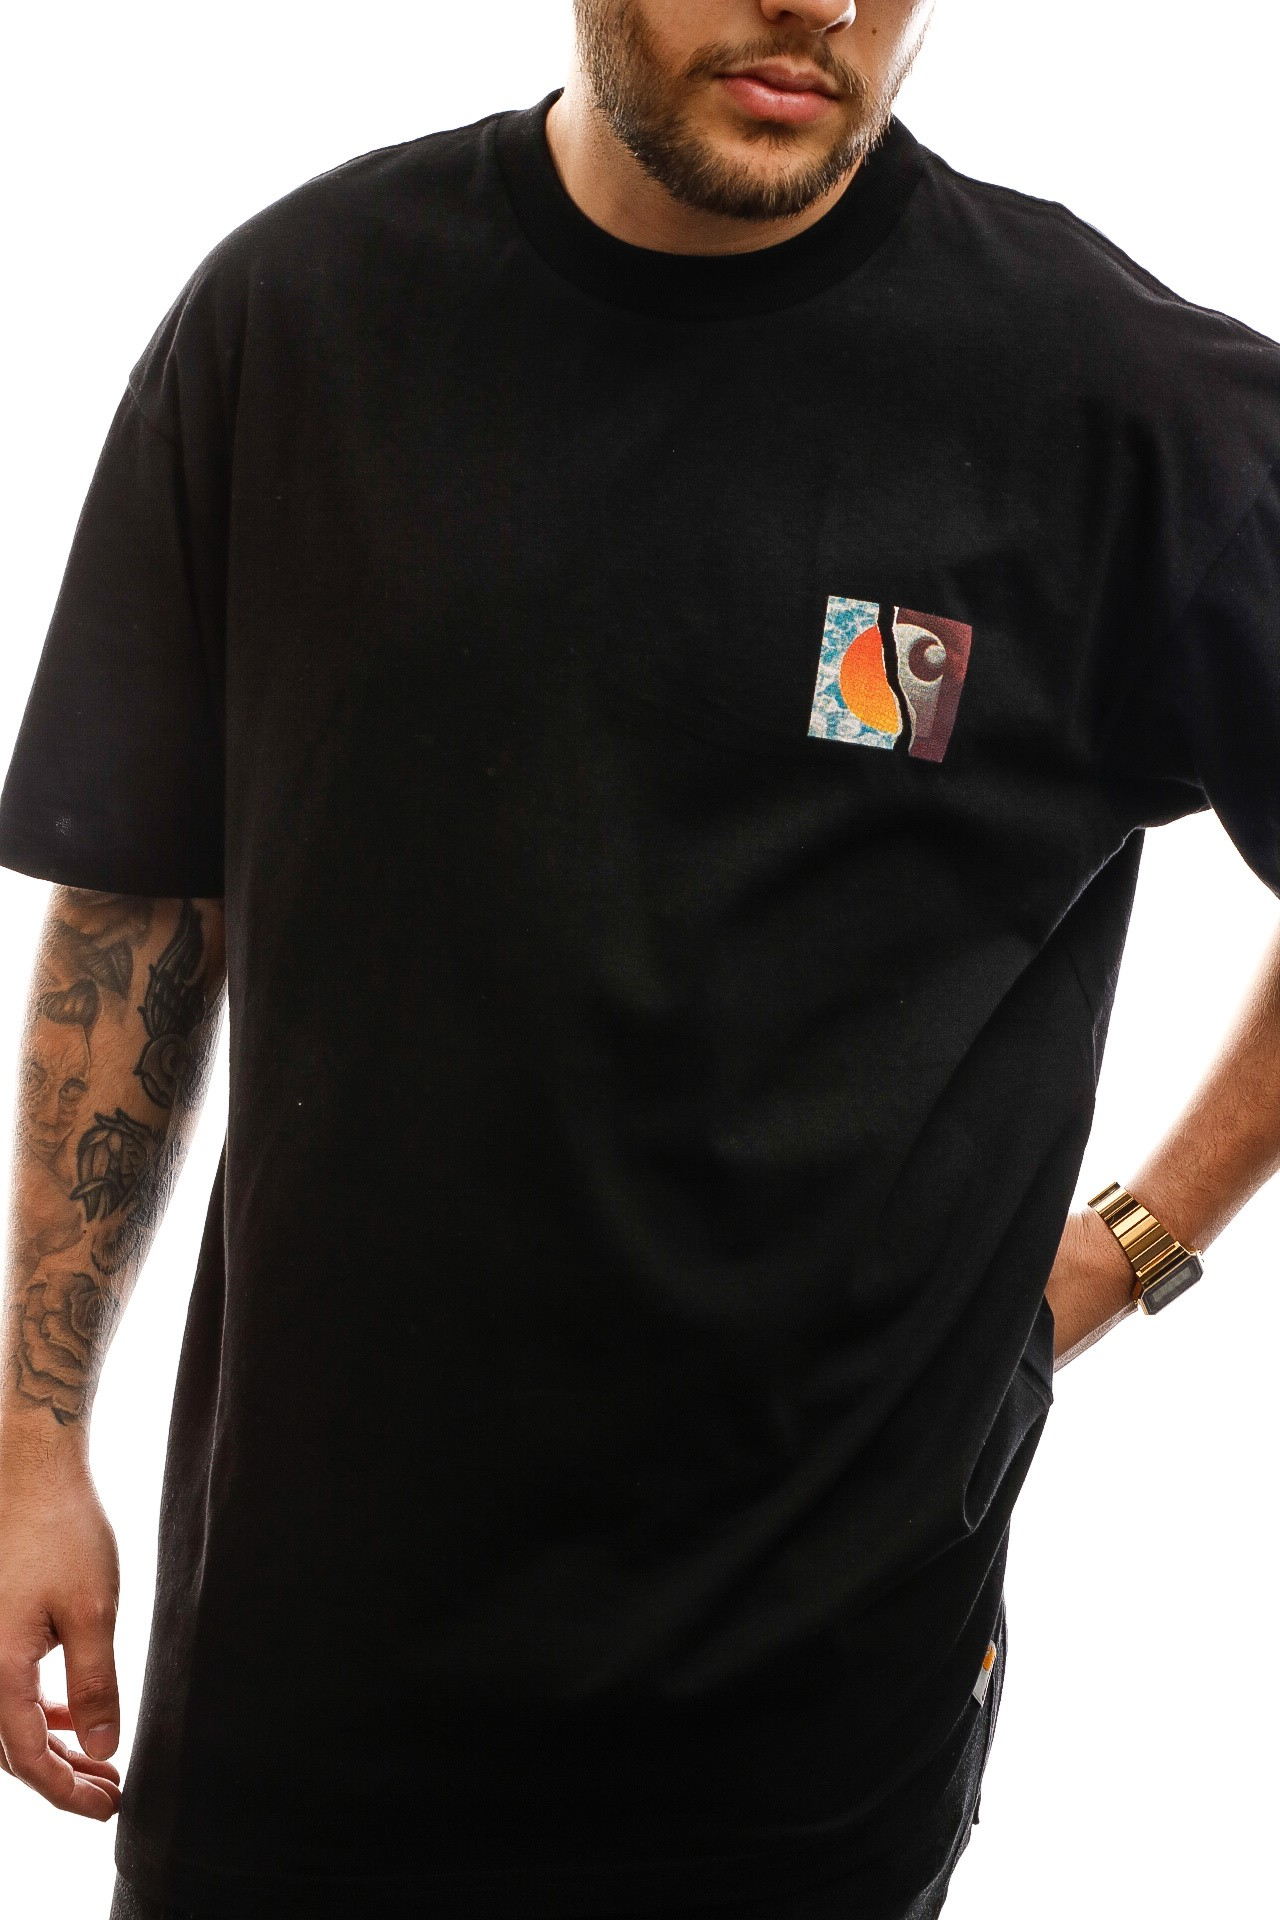 Afbeelding van Carhartt T-shirt S/S Backpages T-Shirt Black I027757